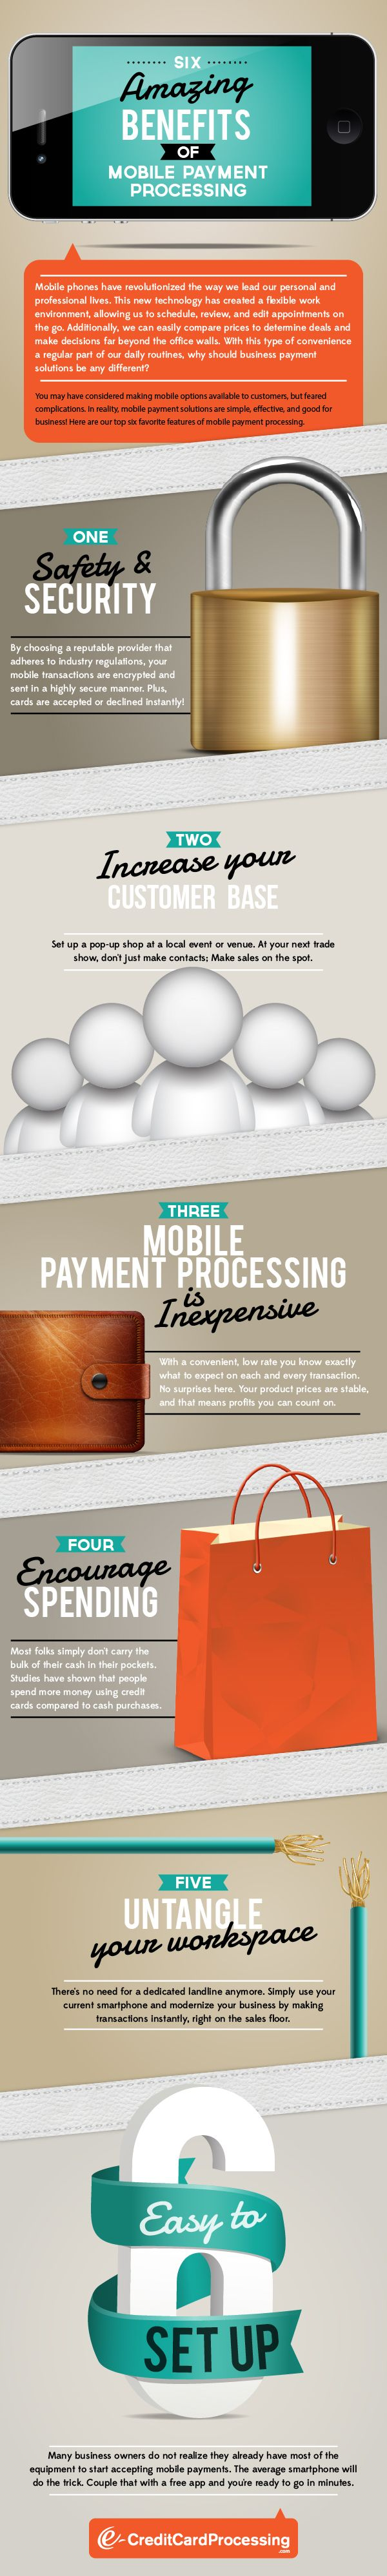 Six Amazing Benefits of Mobile Payment Processing